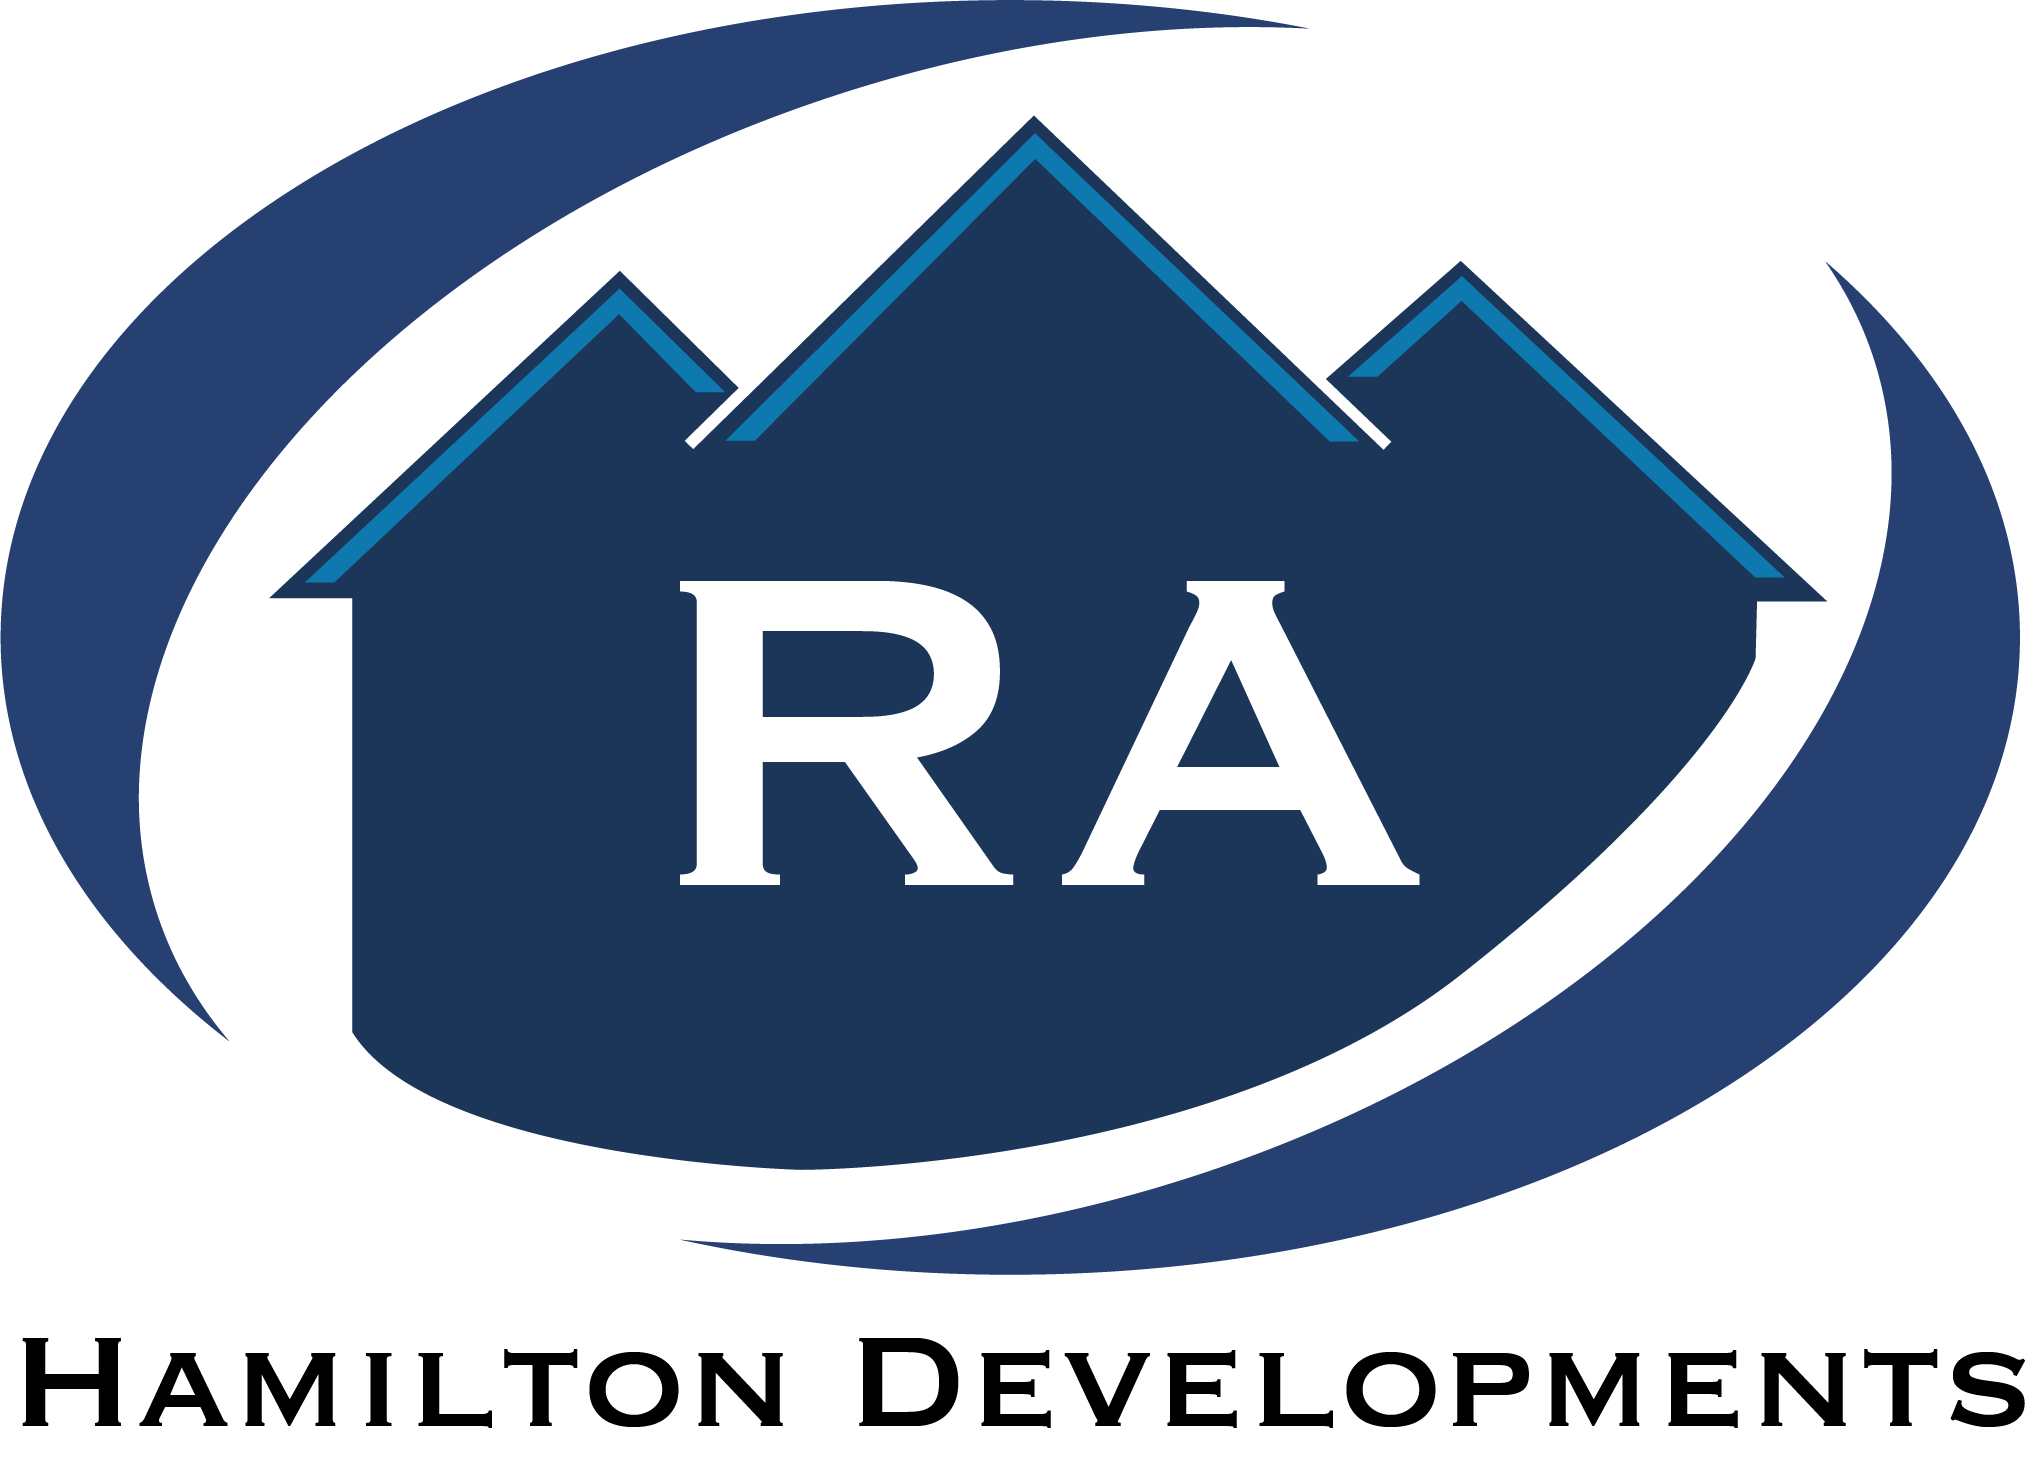 RA Hamilton Developments